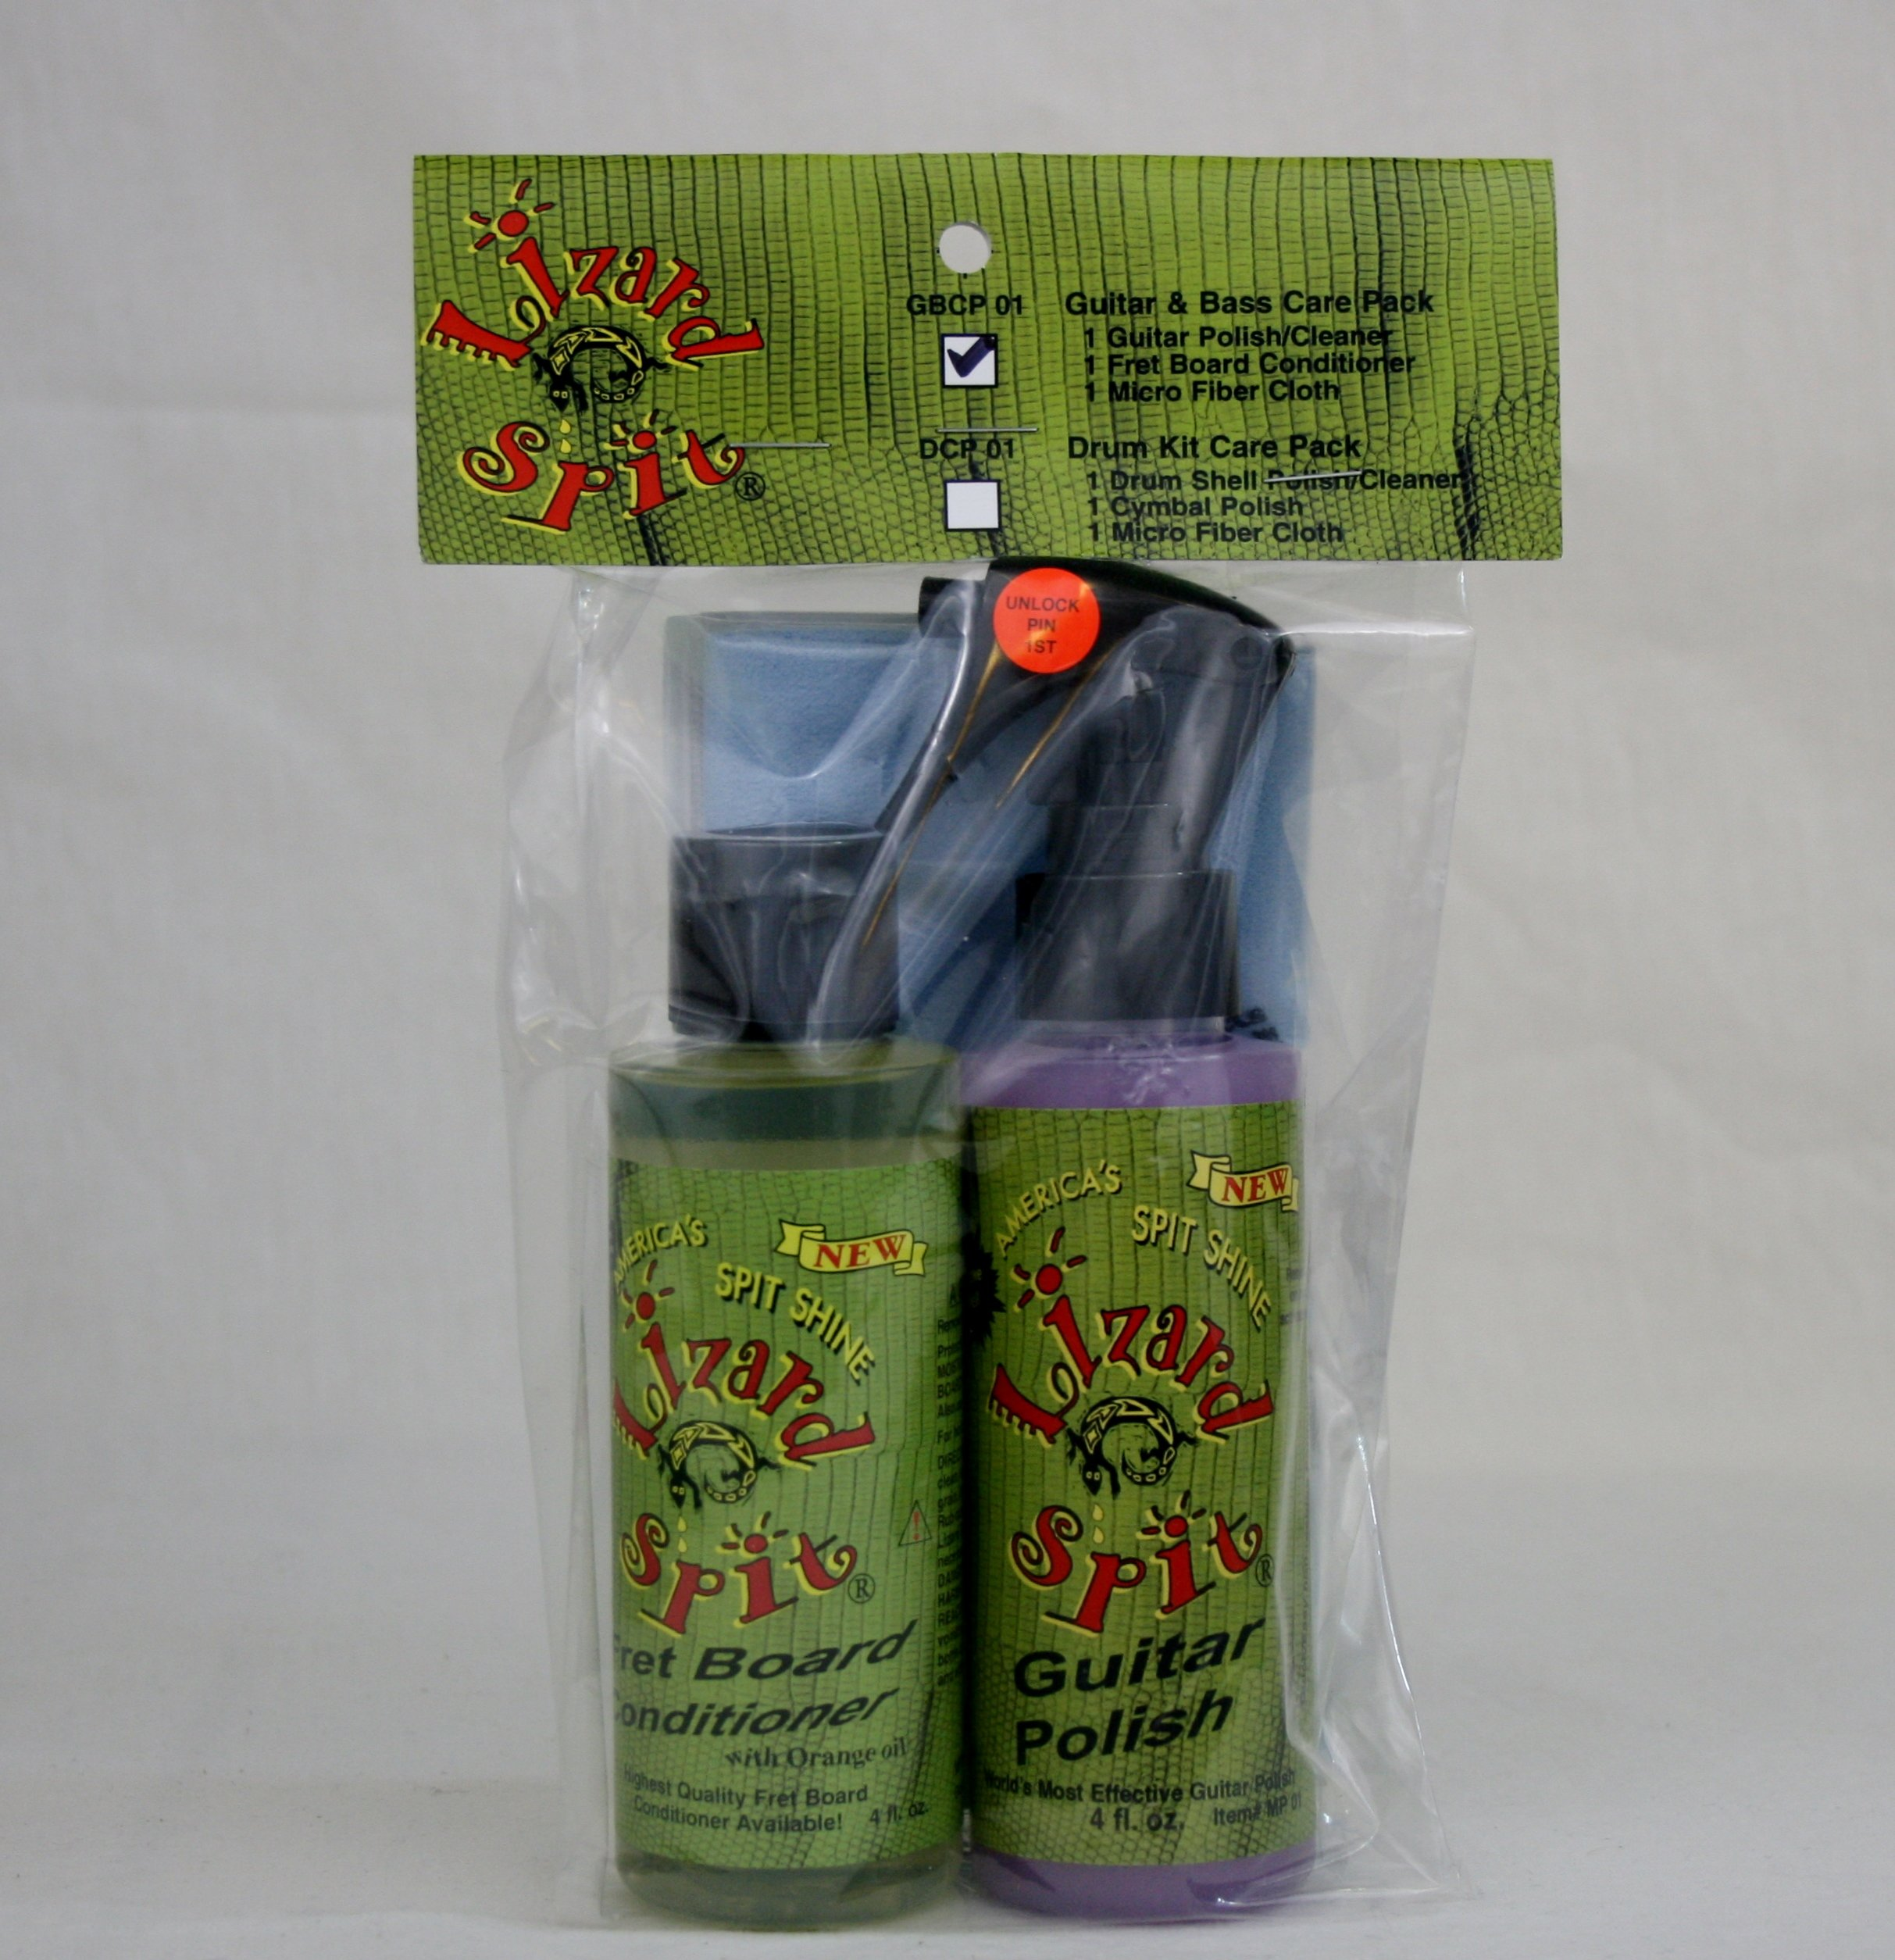 Lizard Spit Guitar/Bass Care Pack (Guitar Polish, Fretboard Conditioner, and Micro Fiber Cloth)